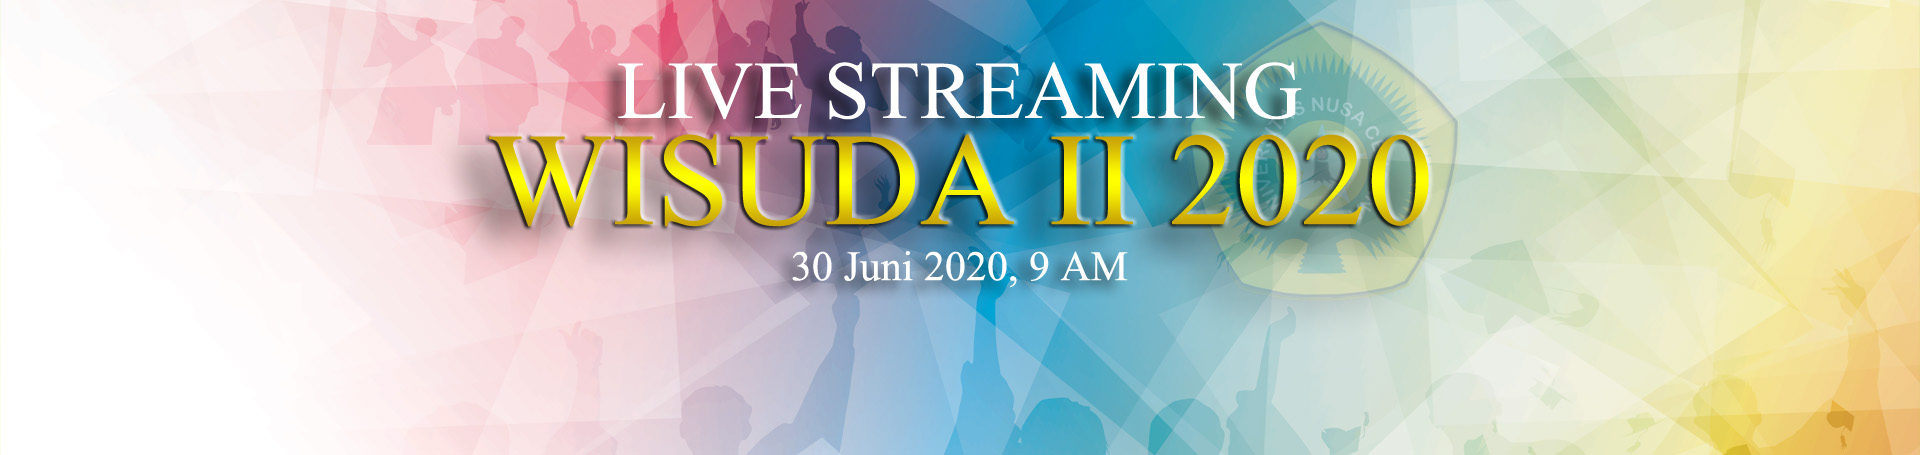 Live Streaming4